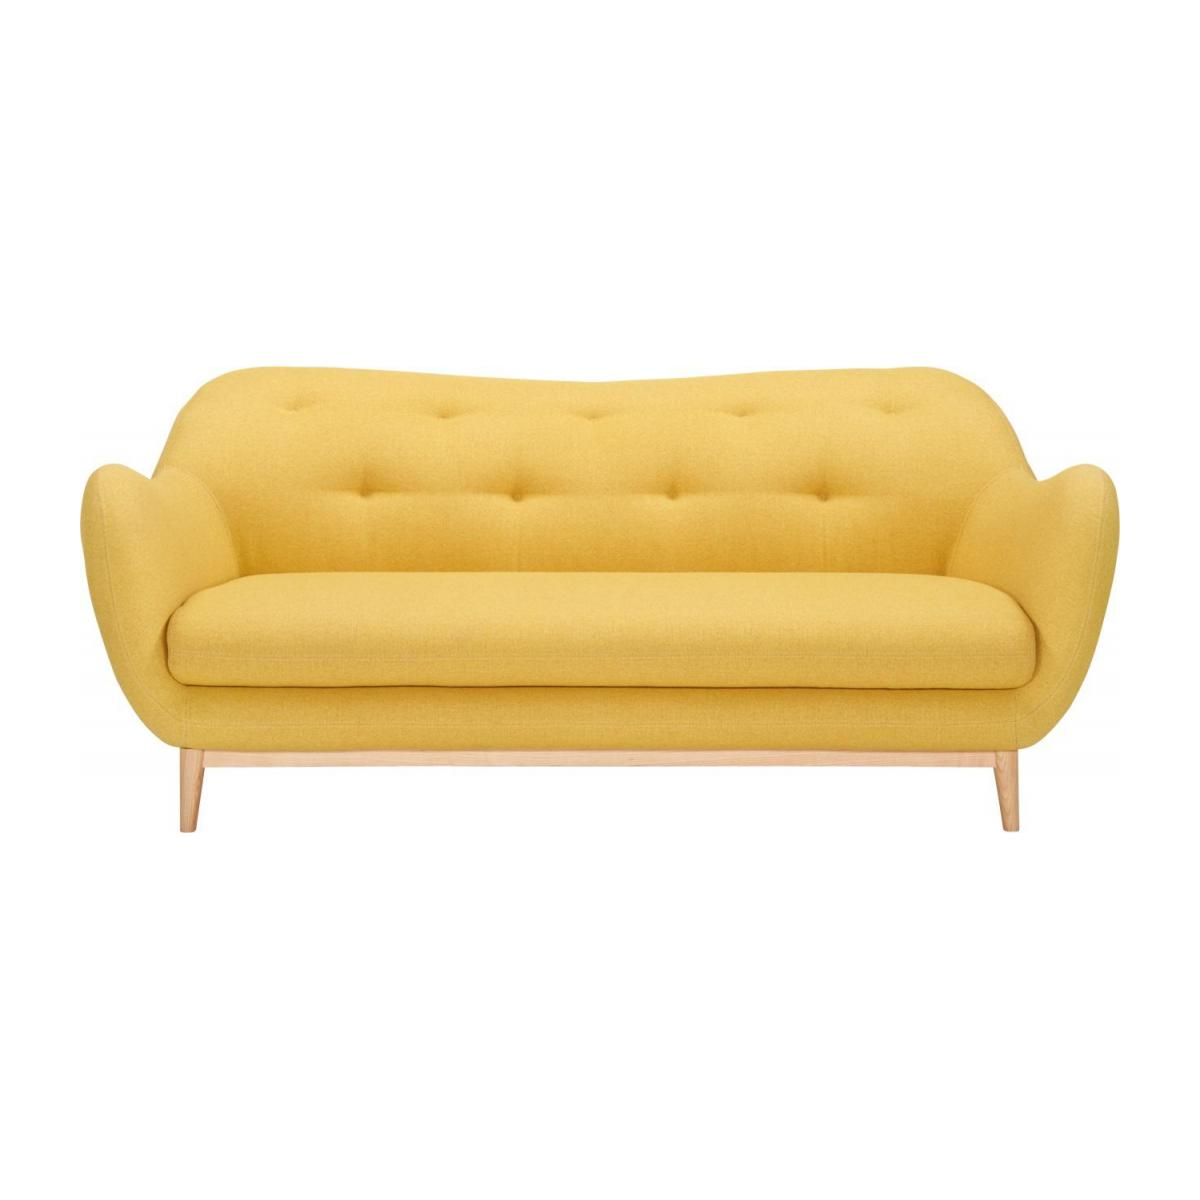 3-seat sofa made of fabric, yellow n°2